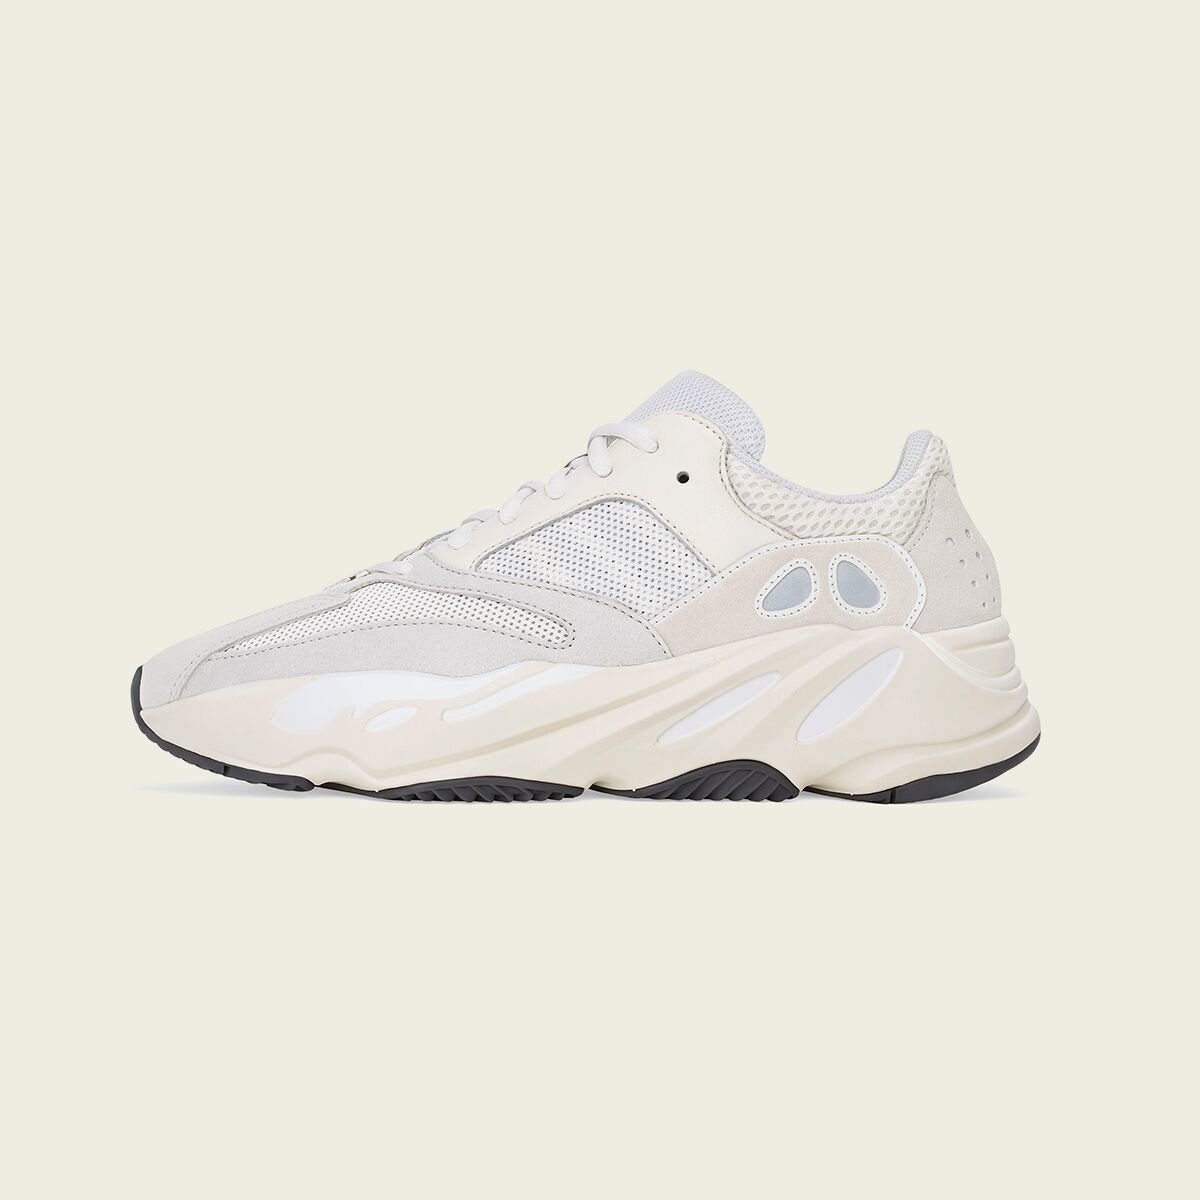 bas prix 35d71 12ea5 NEWS - ADIDAS YEEZY BOOST 700 'ANALOG' BY KANYE WEST - WOEI